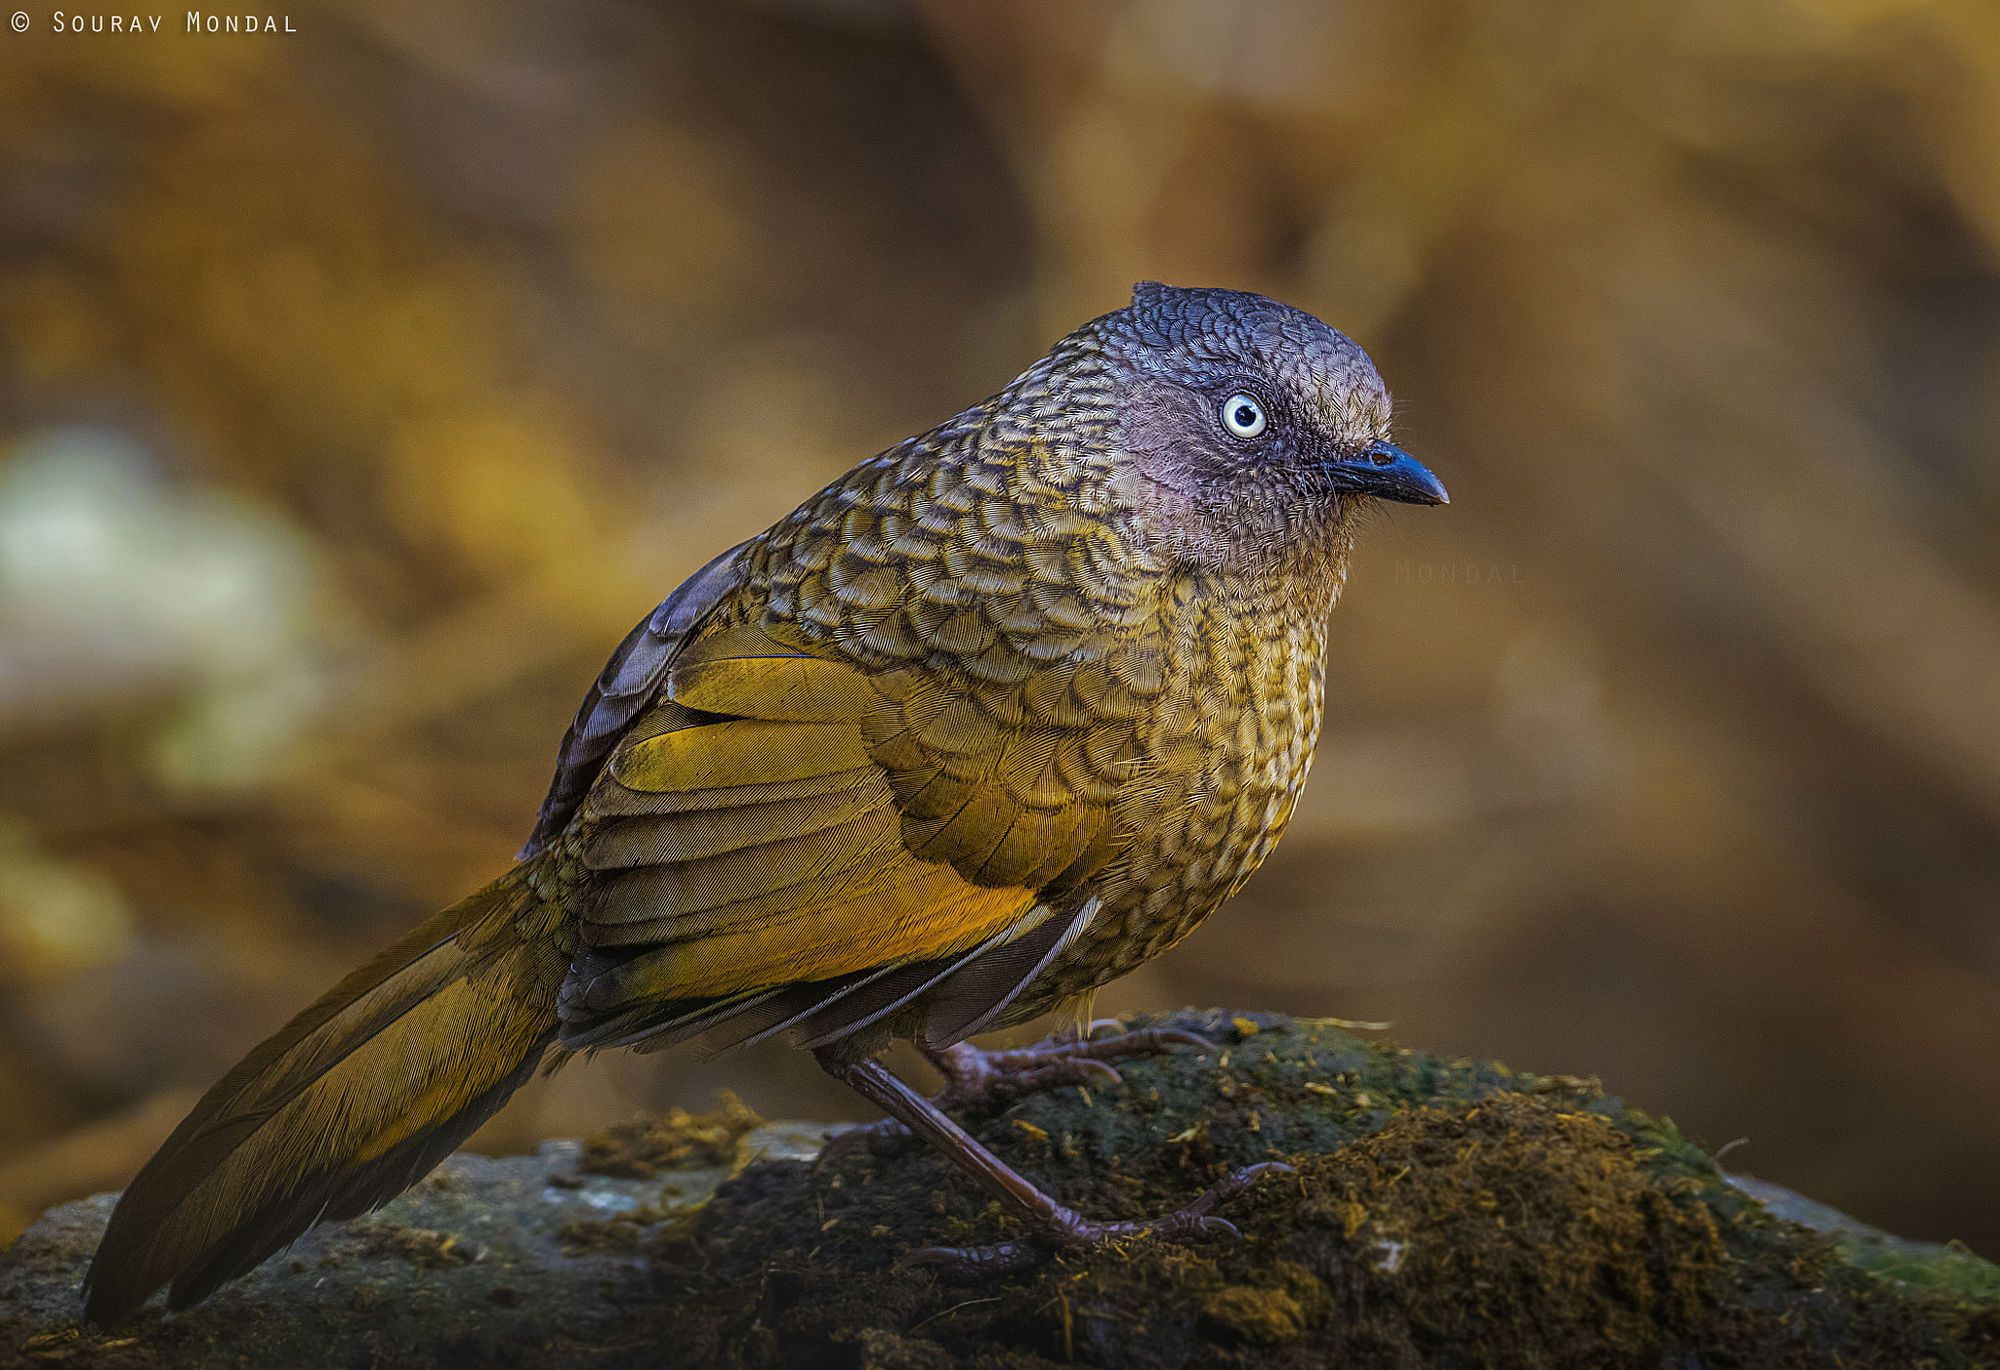 scaly laughing thrush (Trochalopteron subunicolor